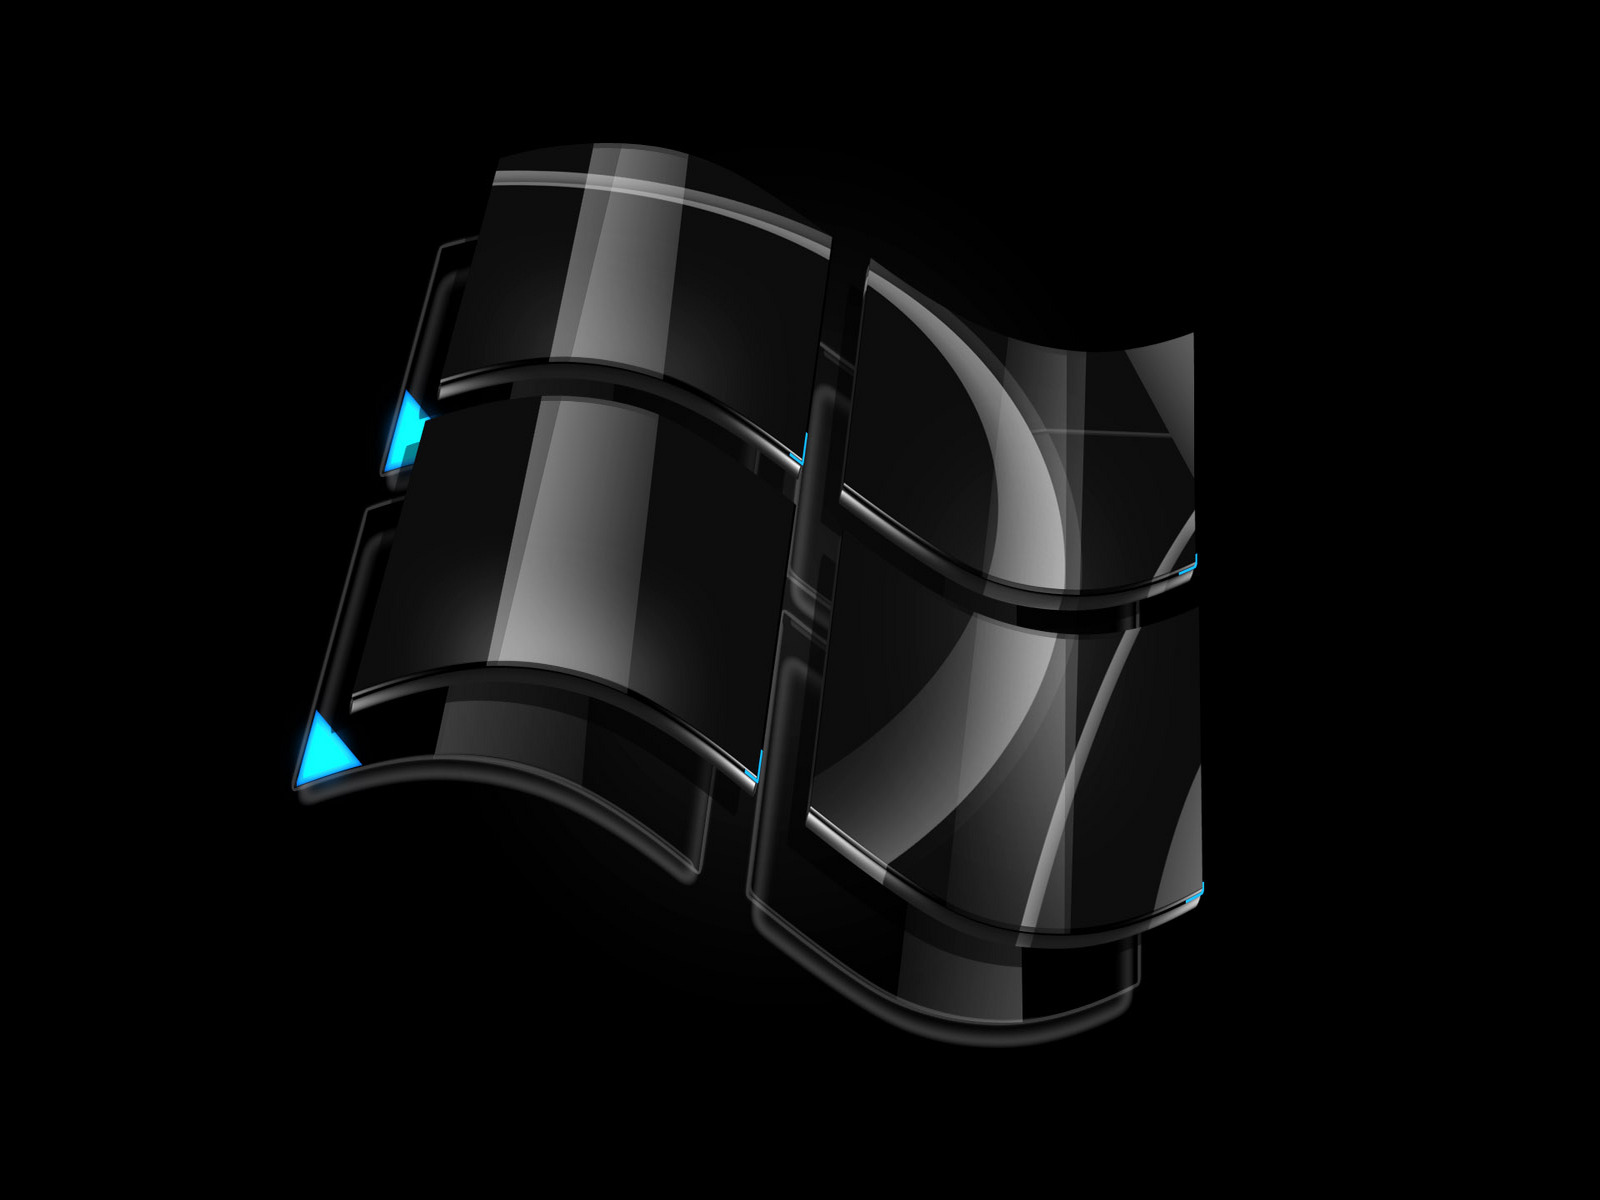 wallpaper | black windows vista logo wallpaper 400x300 Badass